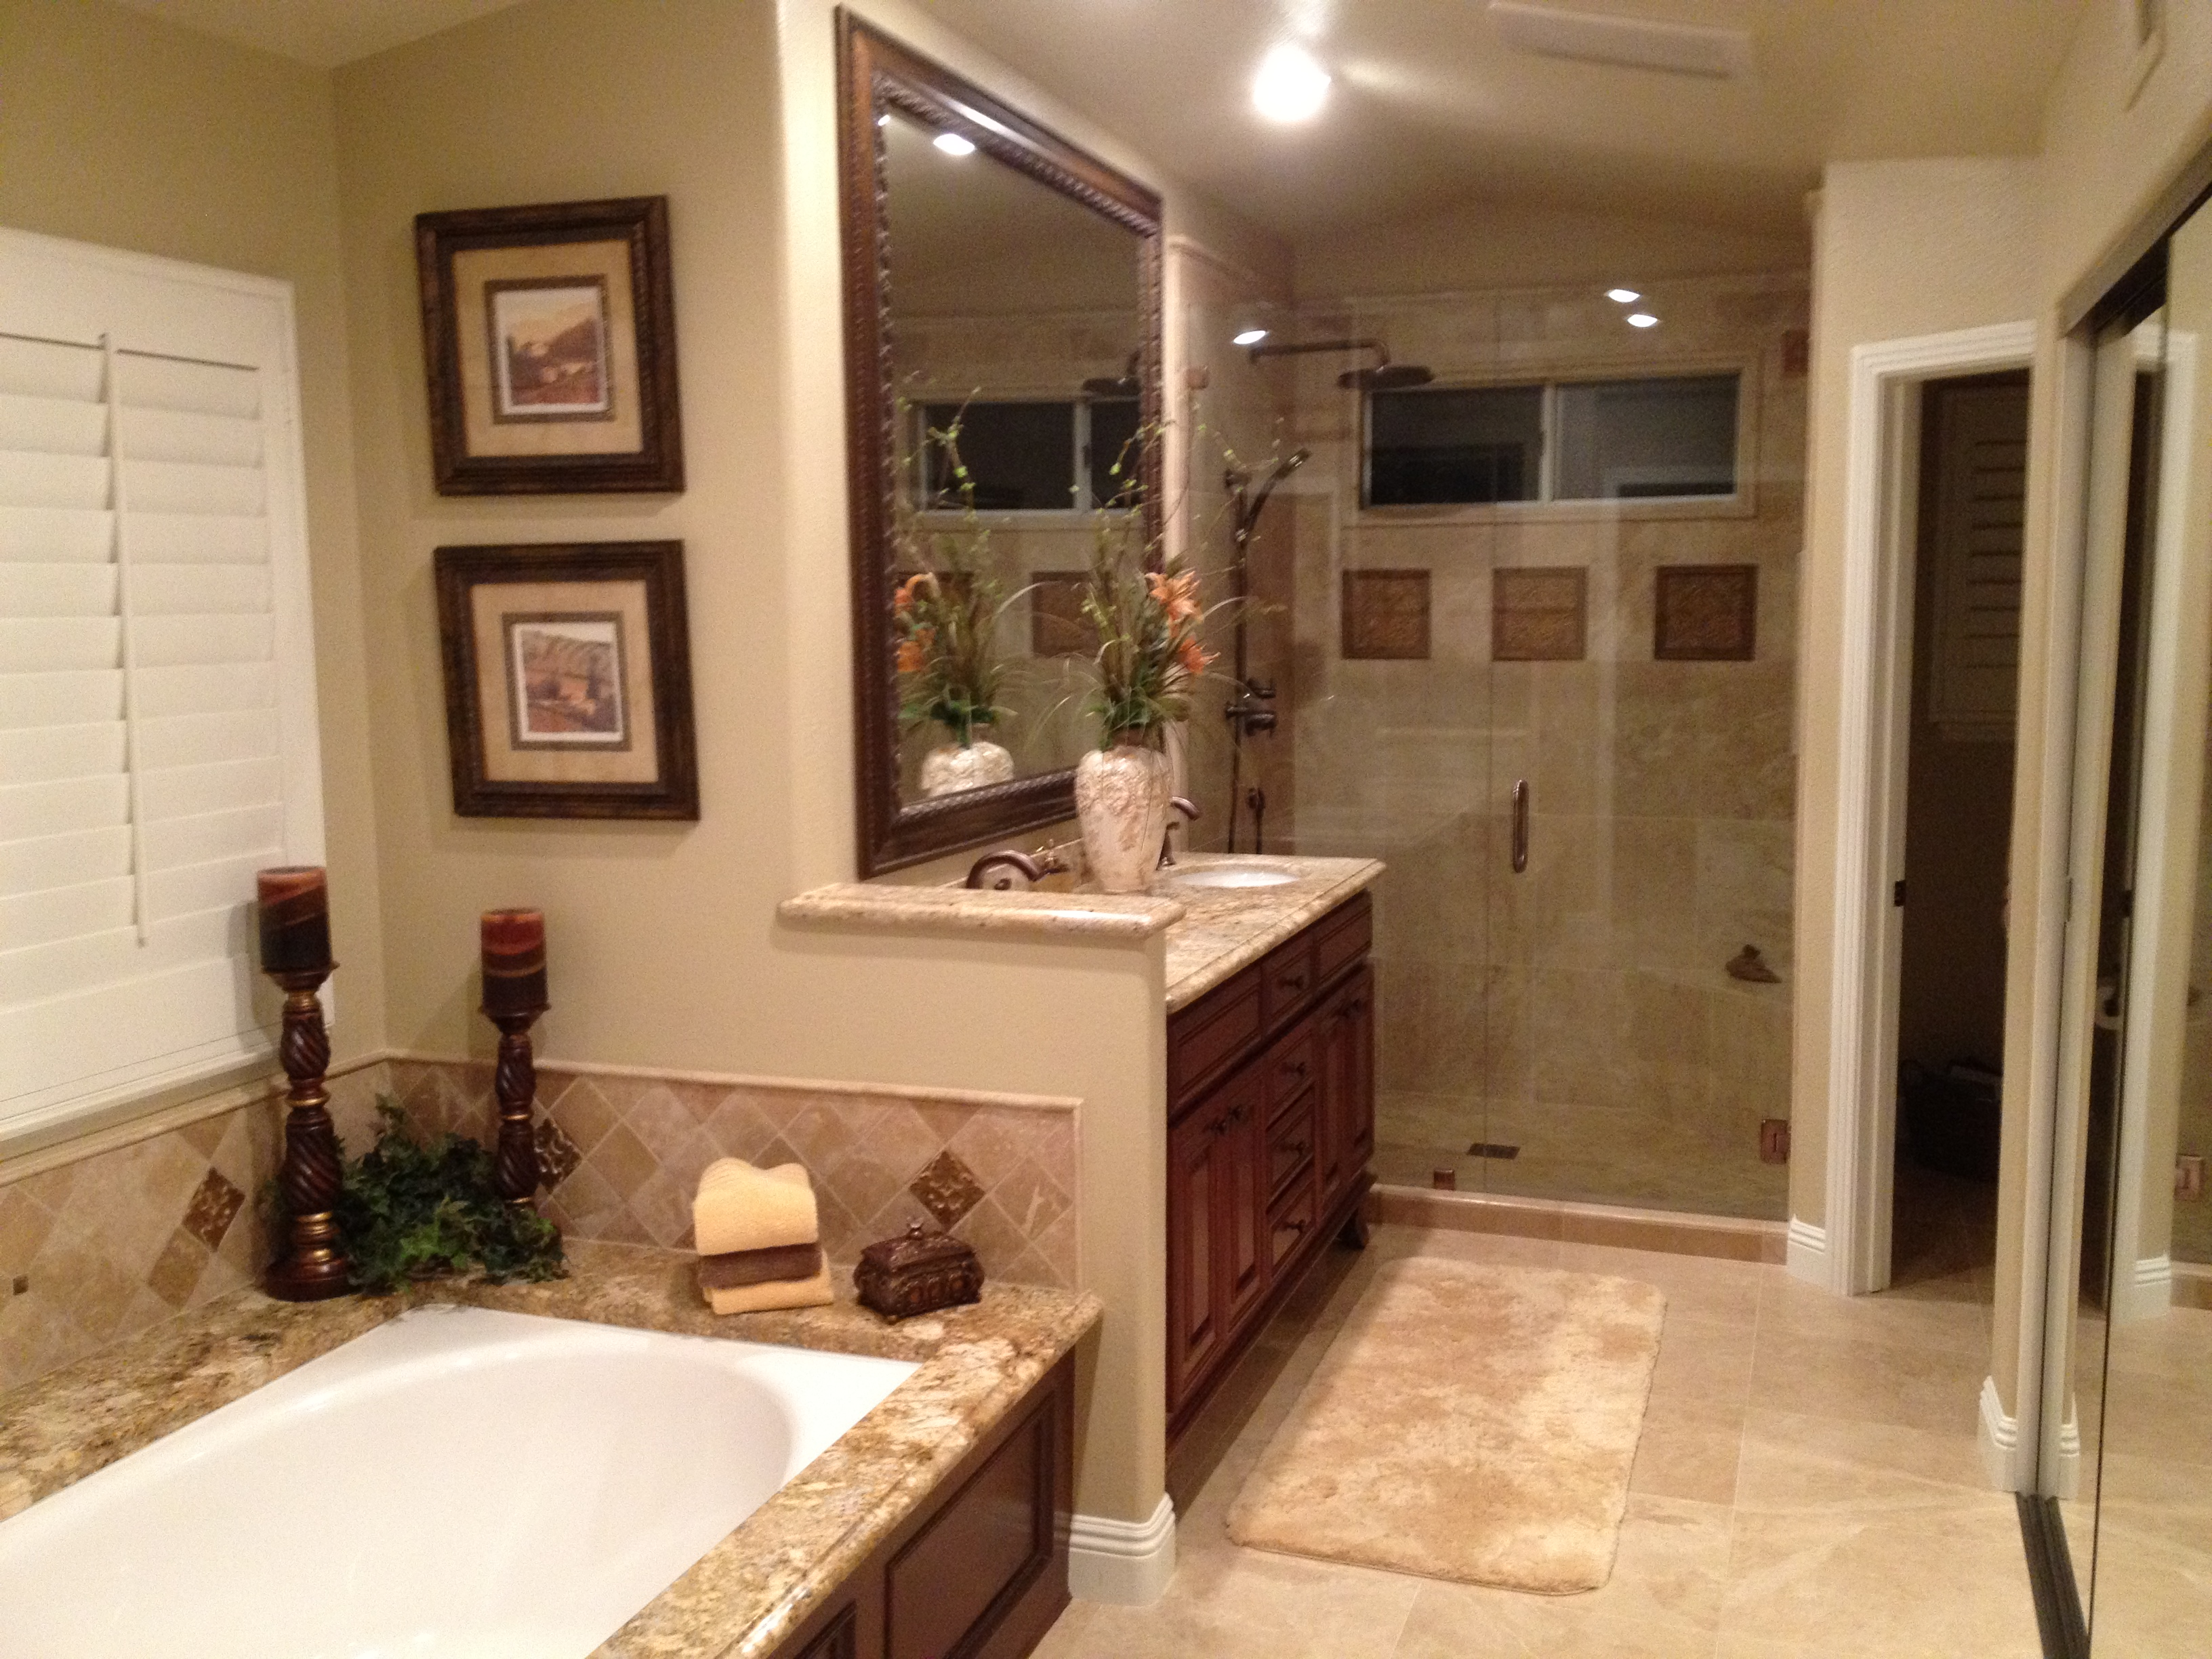 Bathroom Showrooms Orange County Ca bathroom remodel orange county, ca | custom bathrooms in orange county